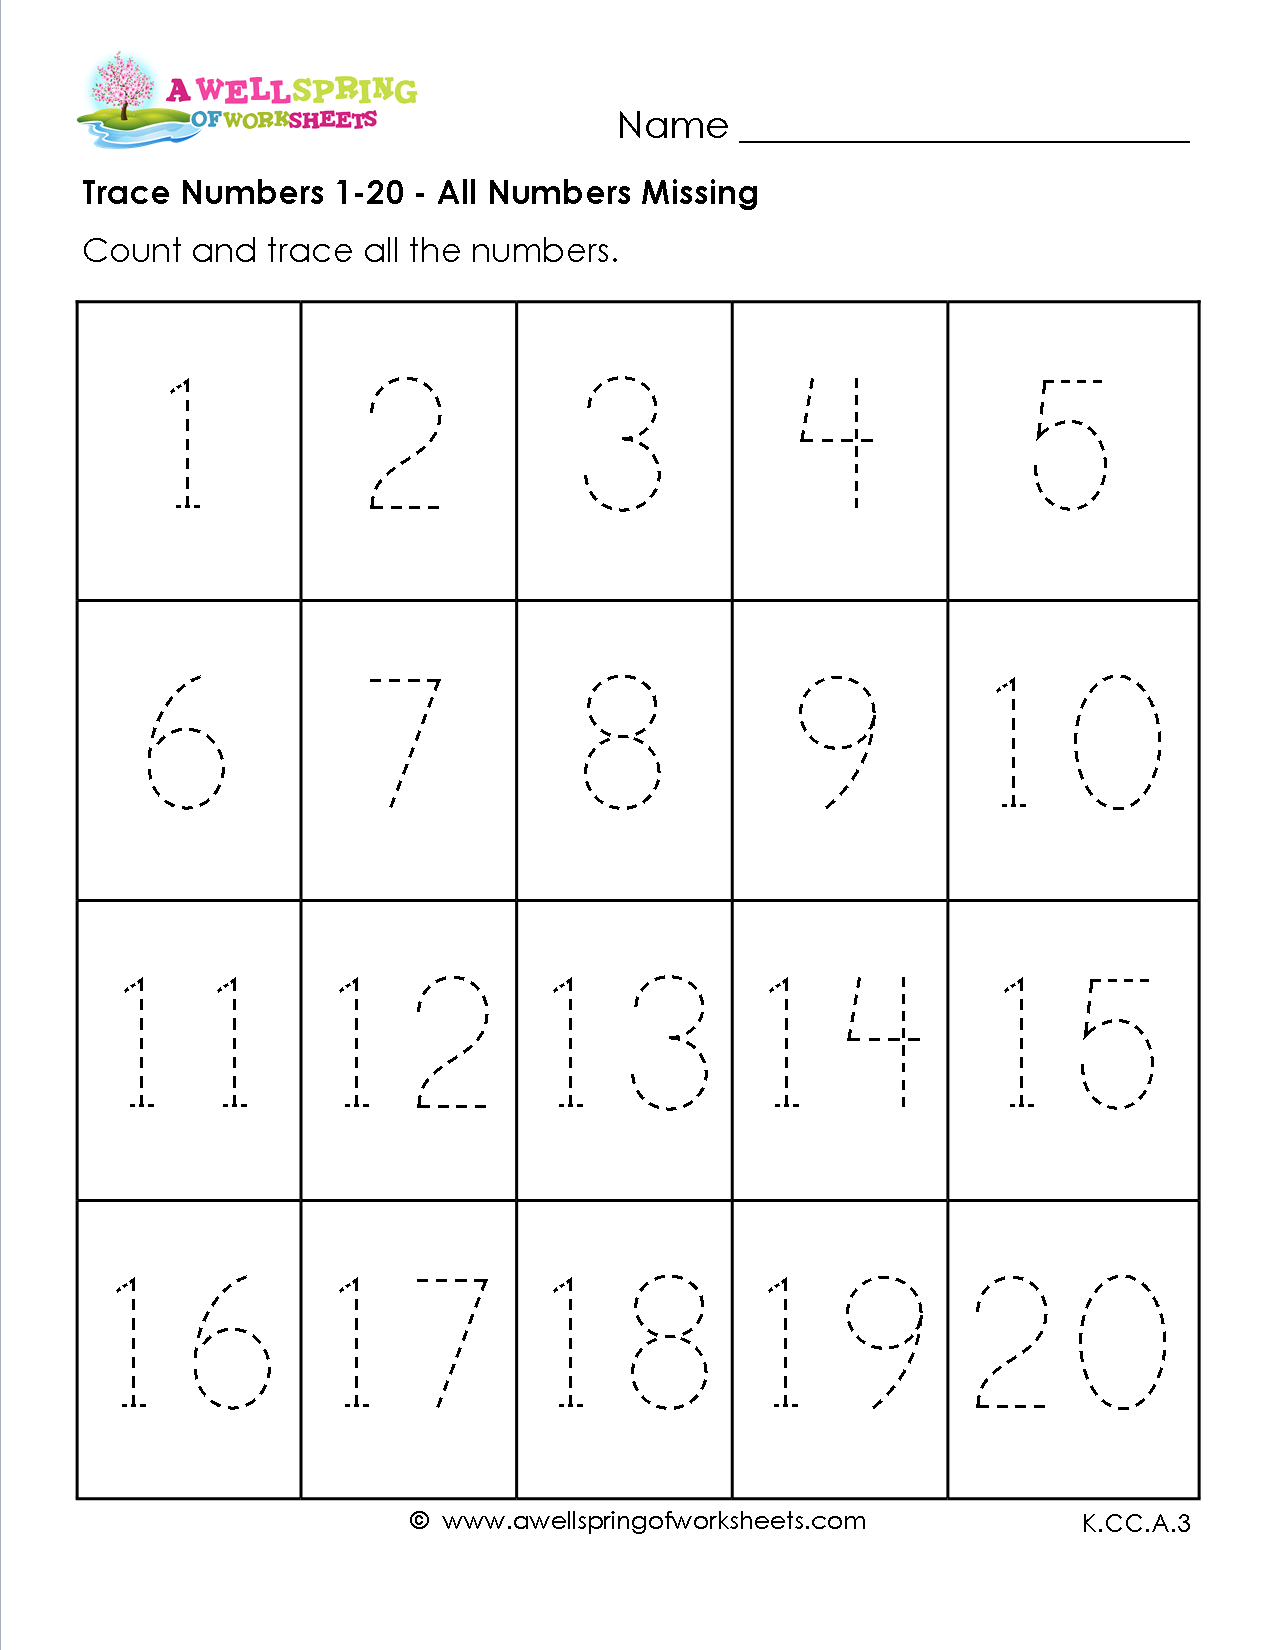 Worksheets Number Tracing Worksheets 1-30 grade level worksheets kindergarten math pinterest trace numbers 1 20 in these six number tracing kids all the half or only a few of n